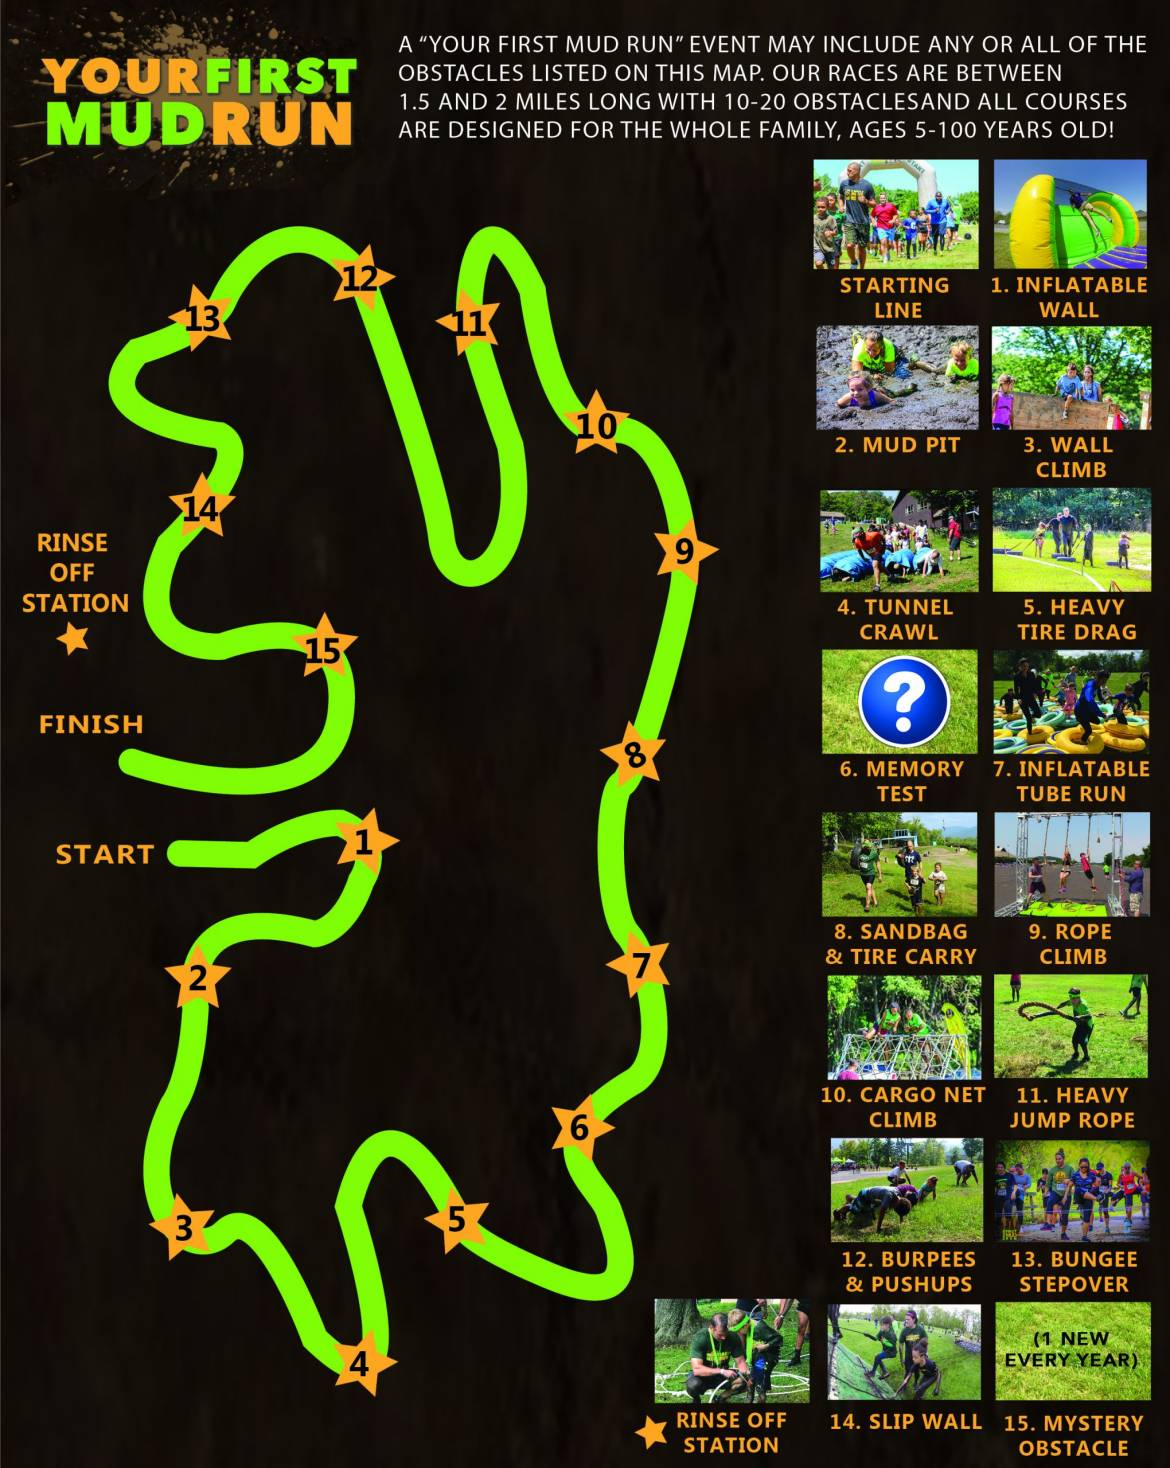 YFMR-course_map-version-2_8-1-19-01-scaled-1.jpg